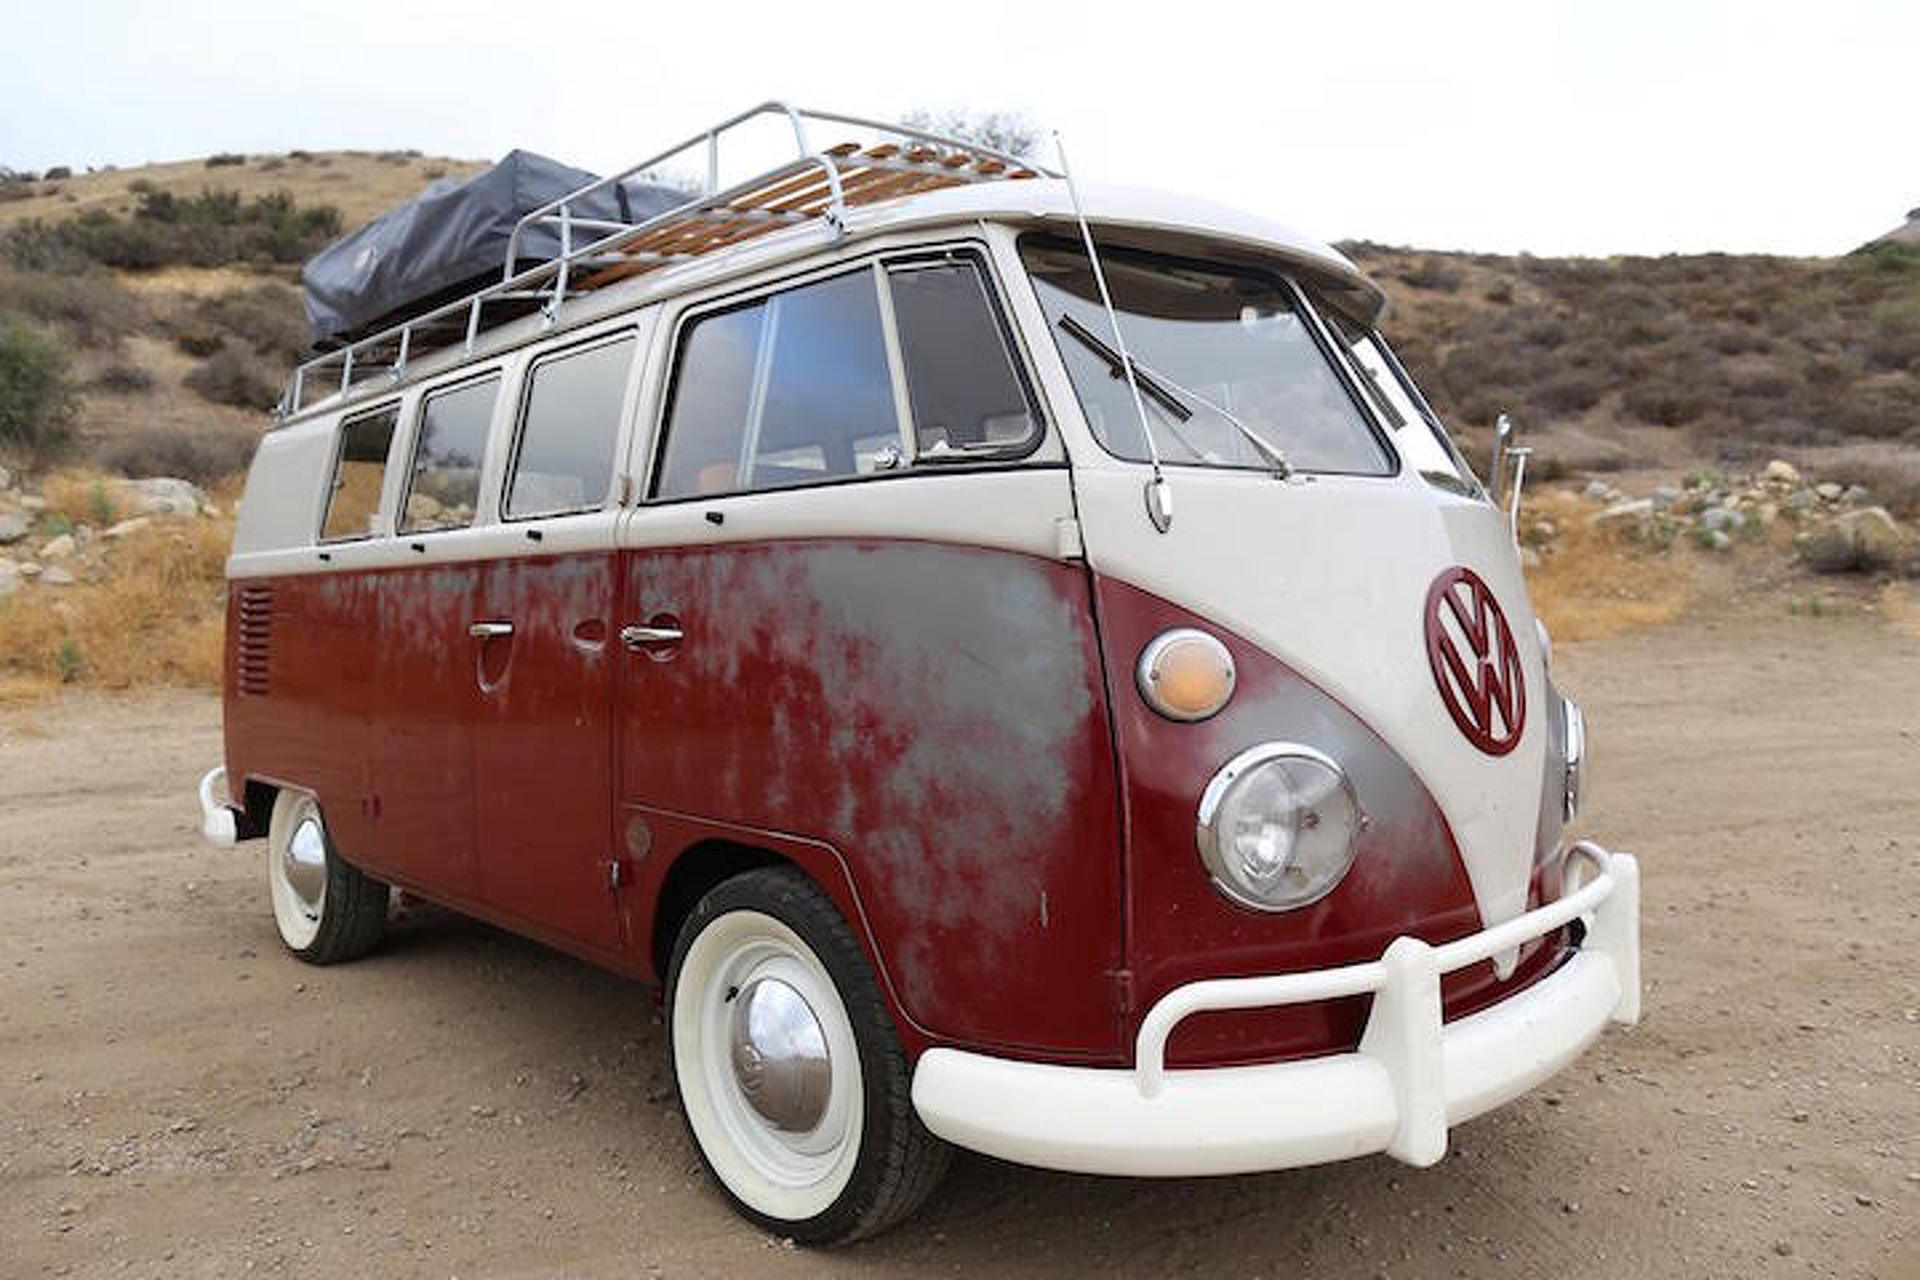 ICON's 1967 Volkswagen Bus Derelict is Absolutely Groovy, Man